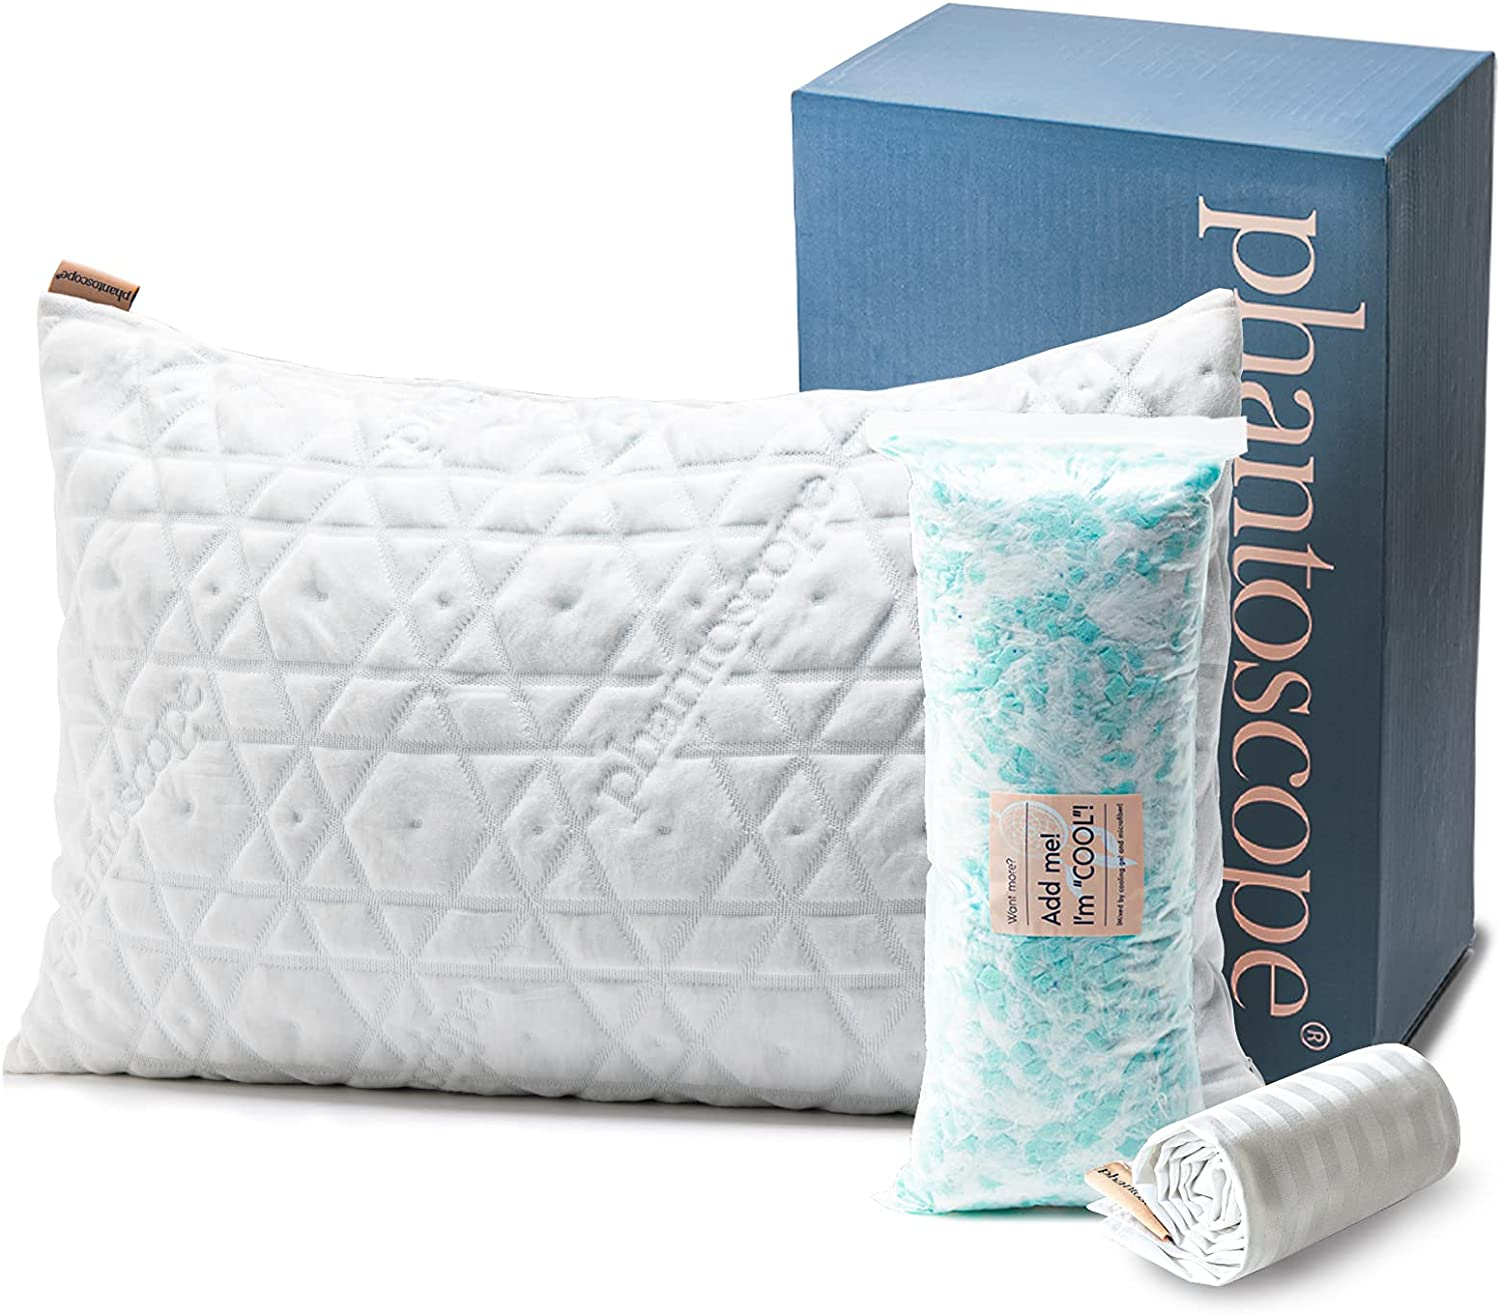 Phantoscope Shredded Memory Foam Pillow - Adjustable Cooling Pillow for Sleeping - Hypoallergenic Bed Pillow with Bamboo Cover for Side, Back, Stomach Sleepers , Queen Size